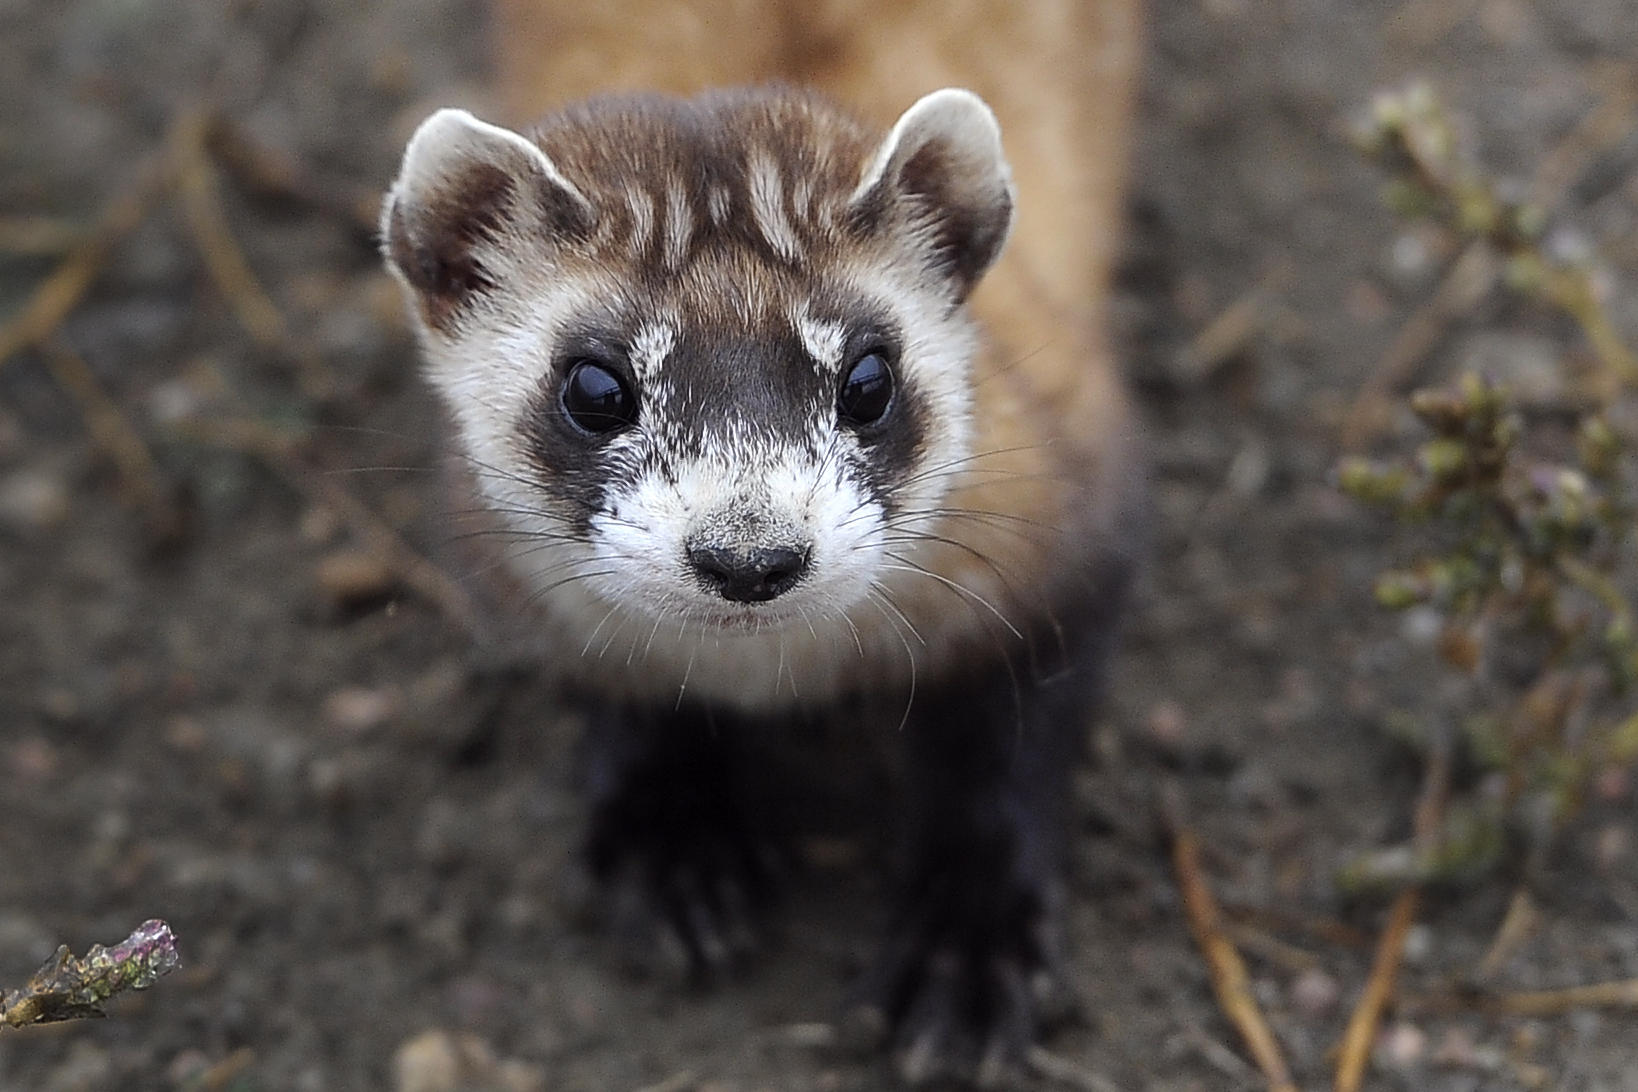 an introduction to the ferrets and their endangerment Introduction: once common, the black-footed ferret is an endangered animal in 1986 there were only 18 black-footed ferrets alive today there are almost 1,000 question: what would happen to the ecosystem student exploration sheet.